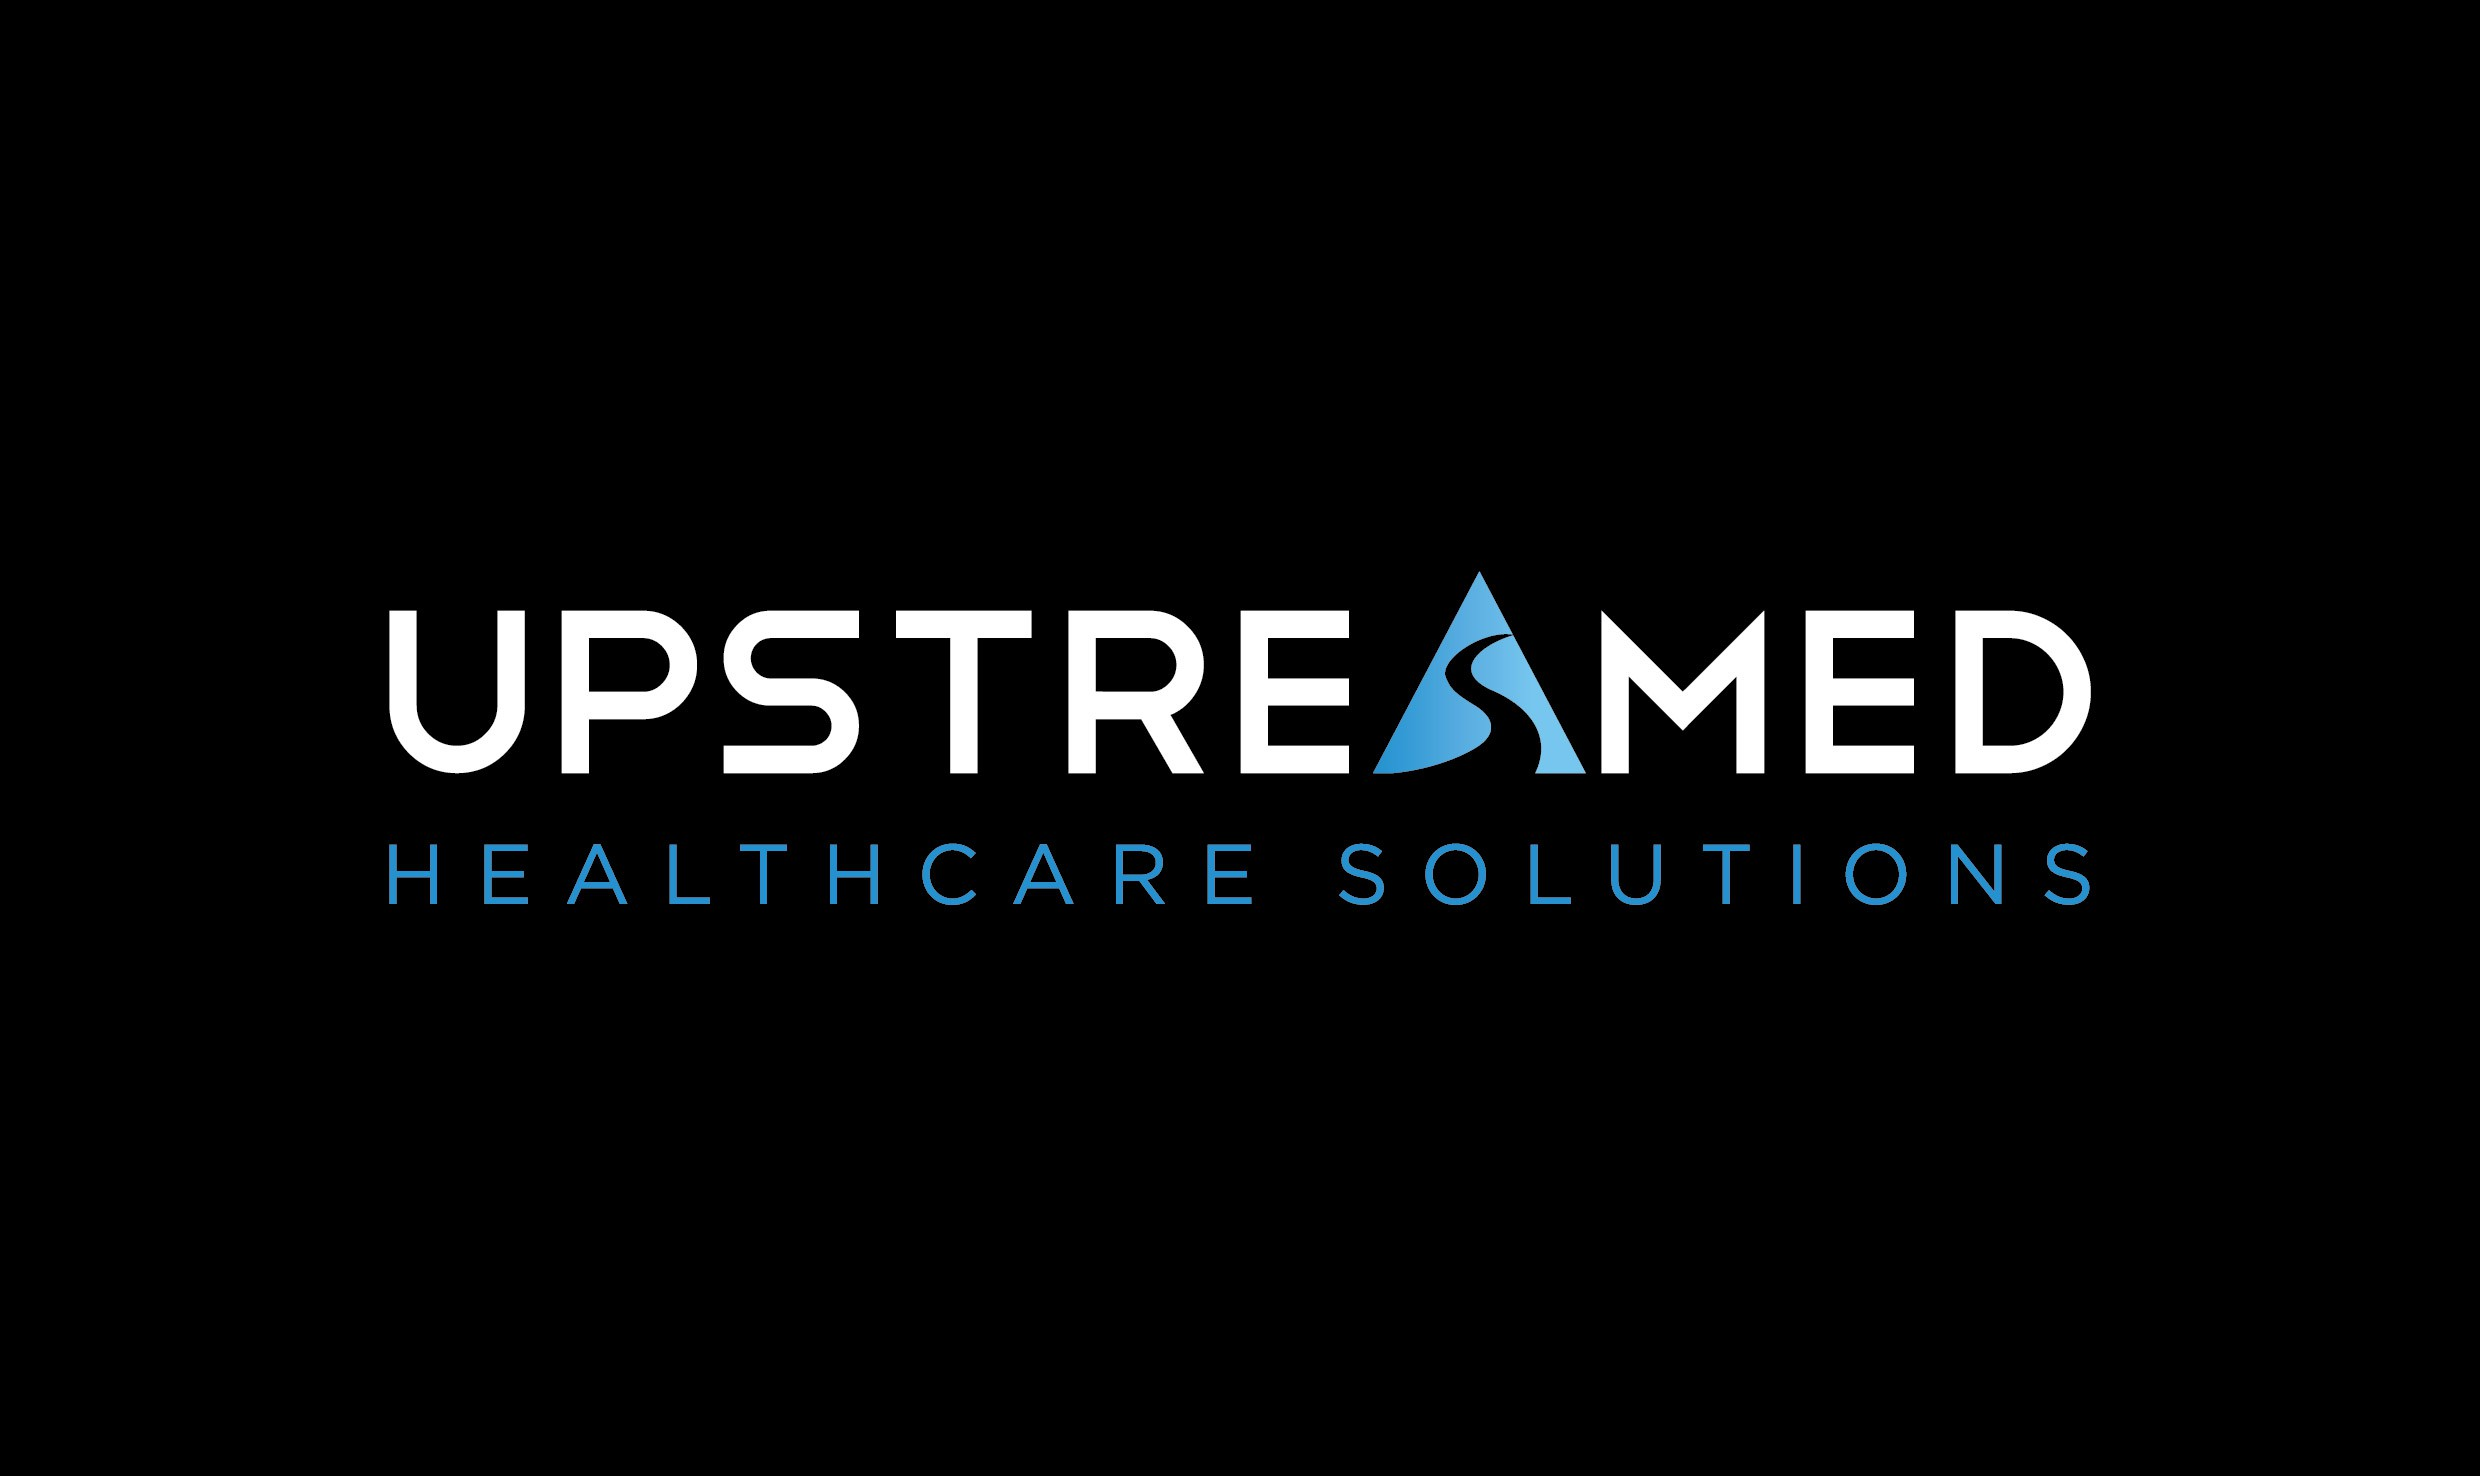 Creative (use of negative space), minimalist logo (for the win) sought by Health company!